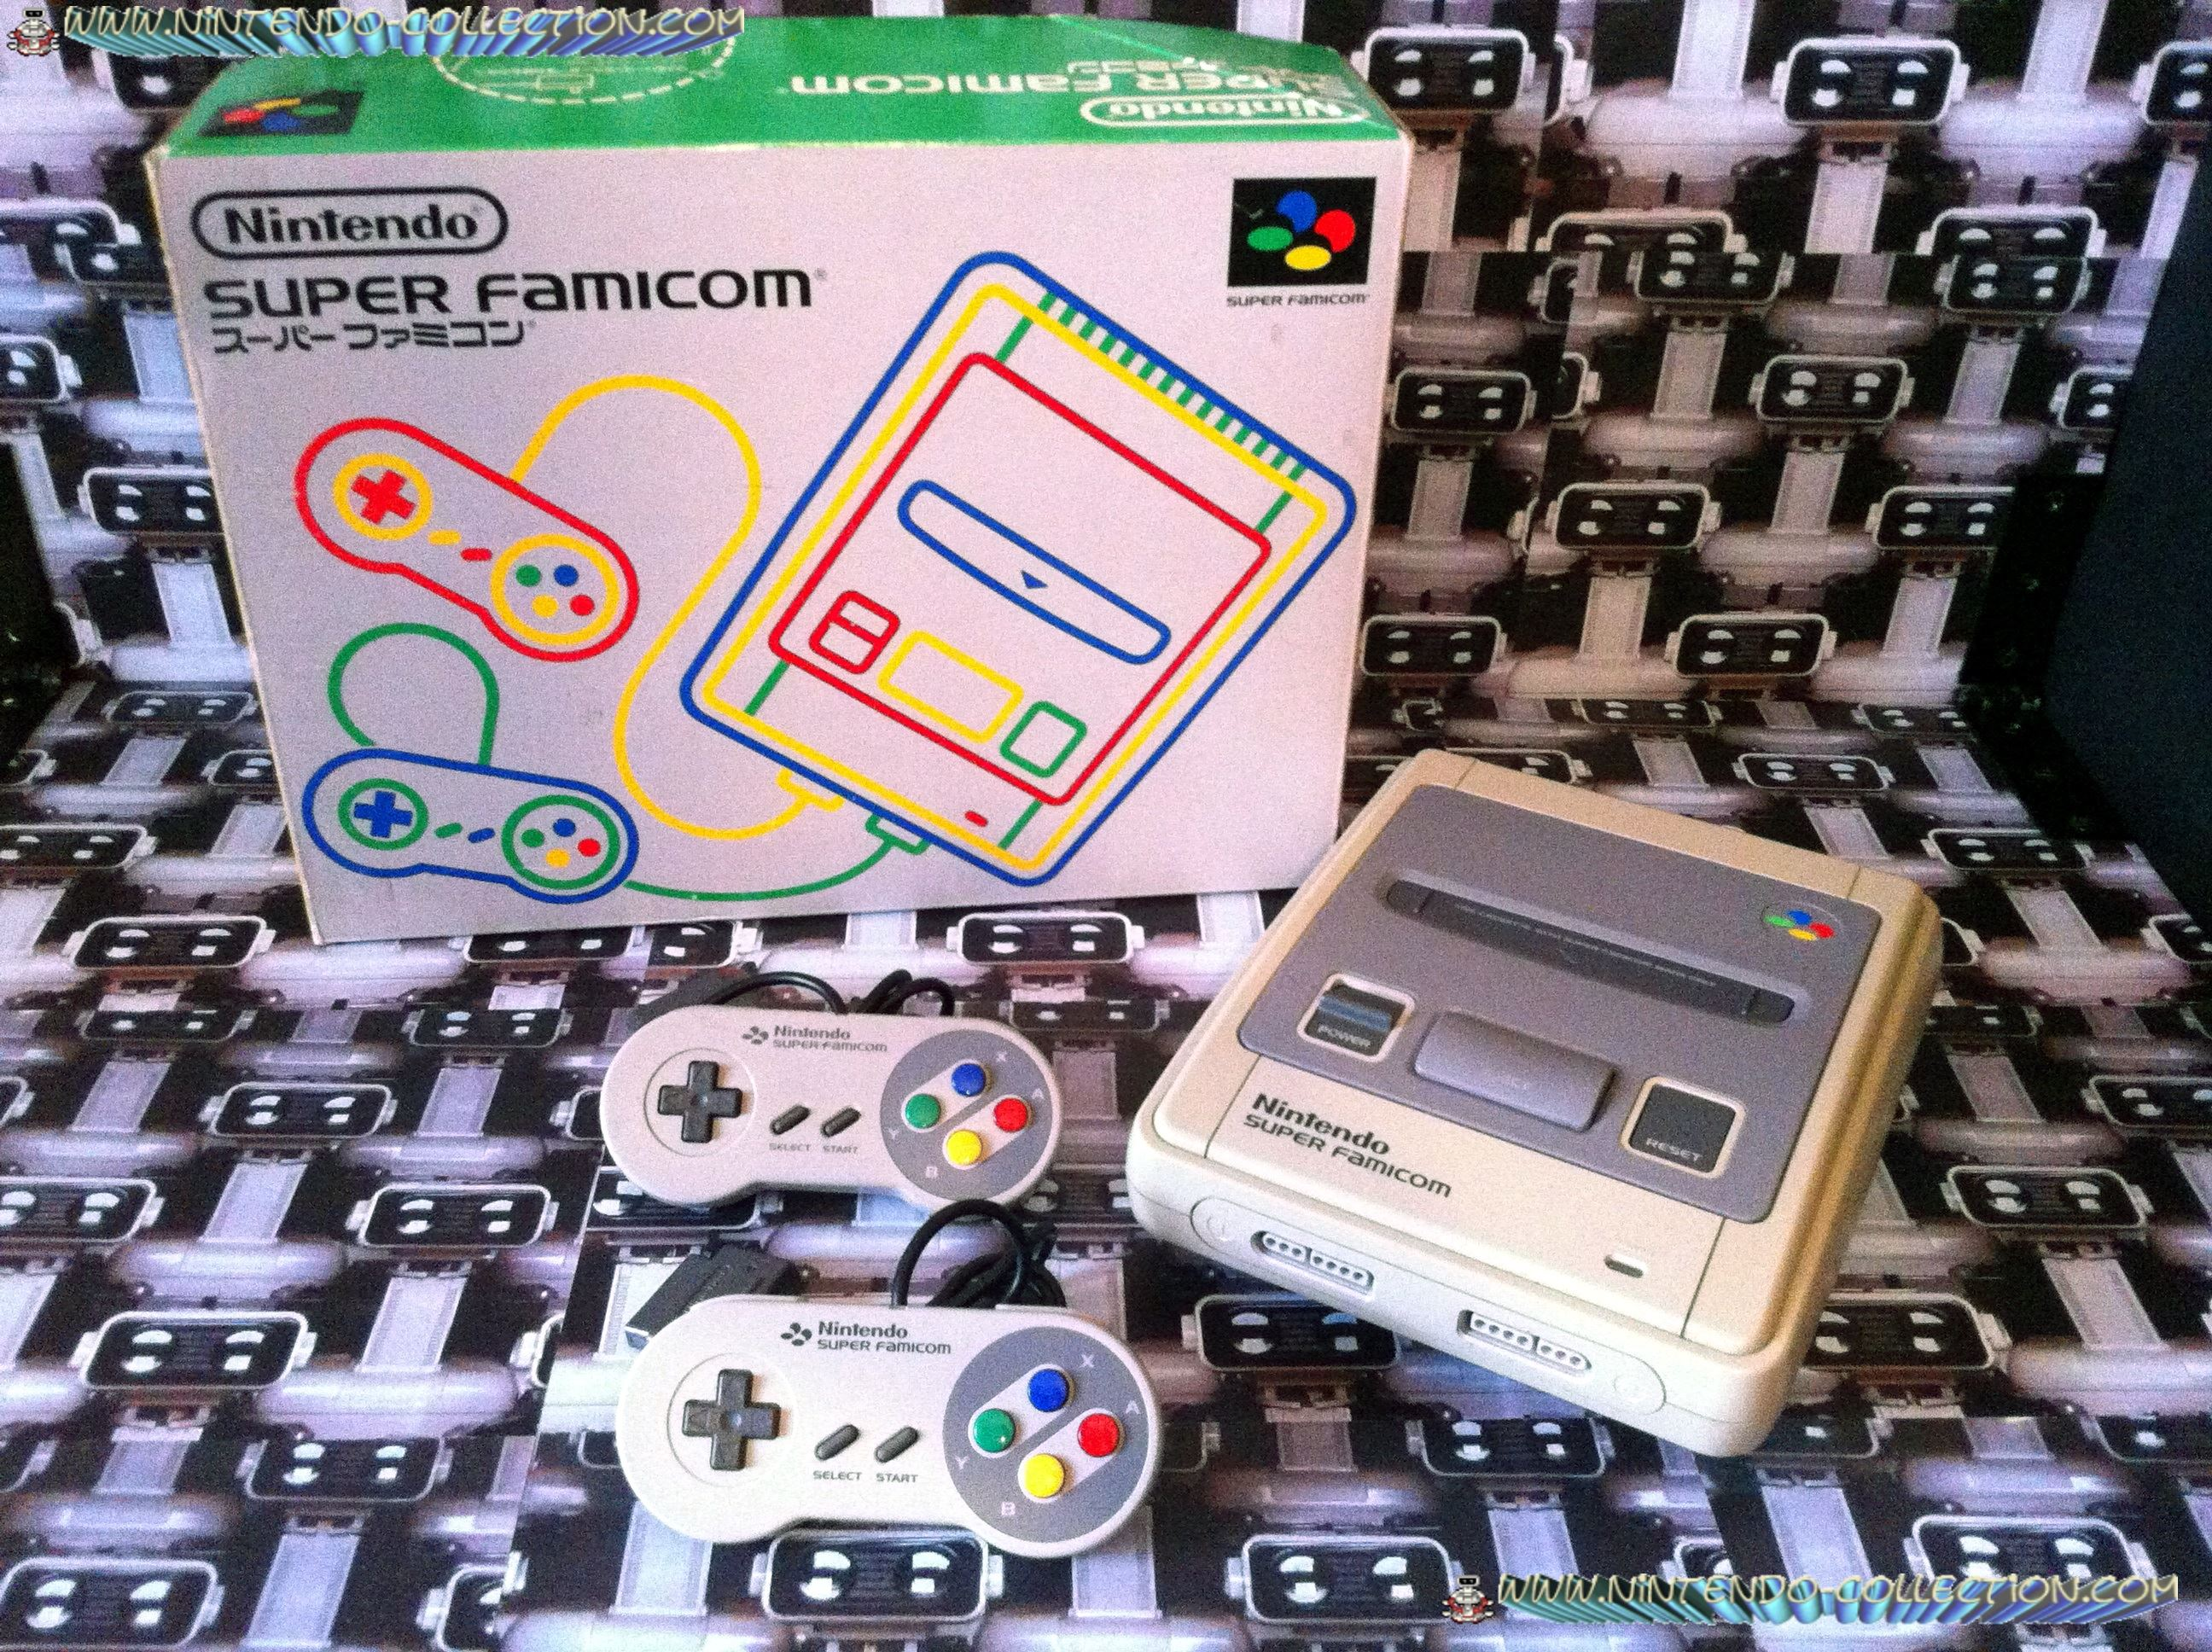 www.nintendo-collection.com - Super Nintendo Super Famicom Super Nes Pack Super Famicom Japon Japon